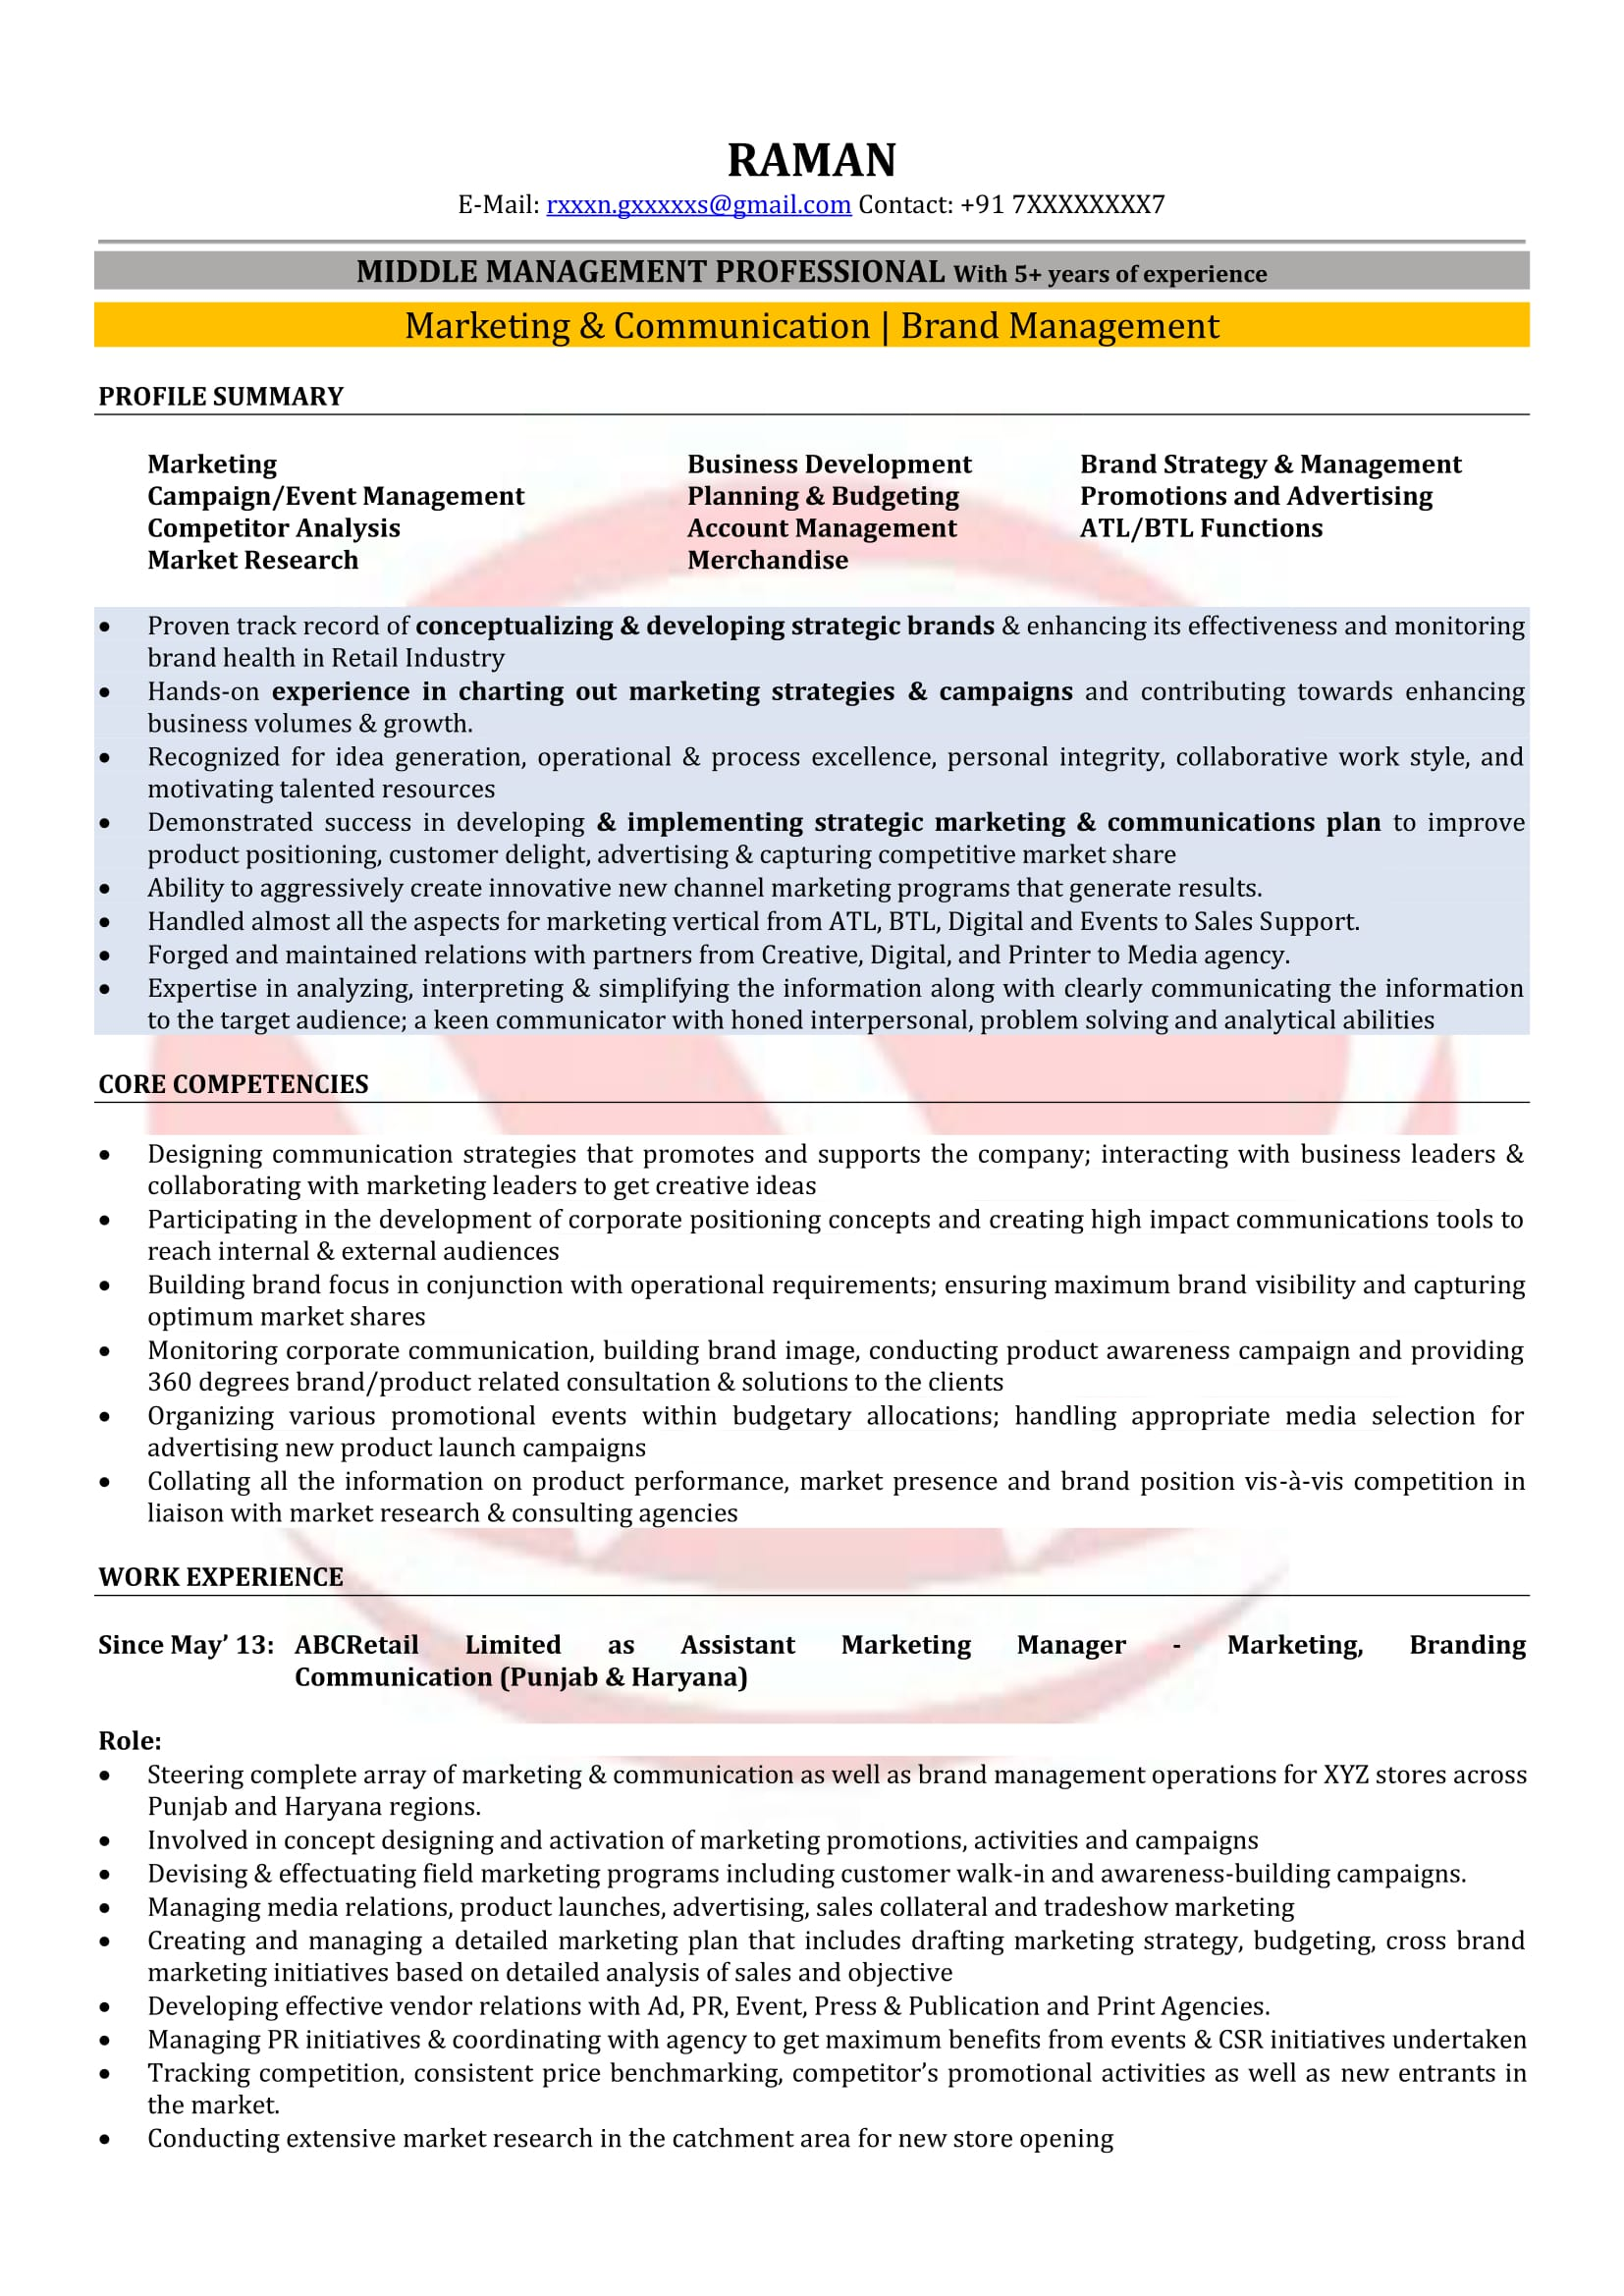 marketing manager sample resumes  download resume format